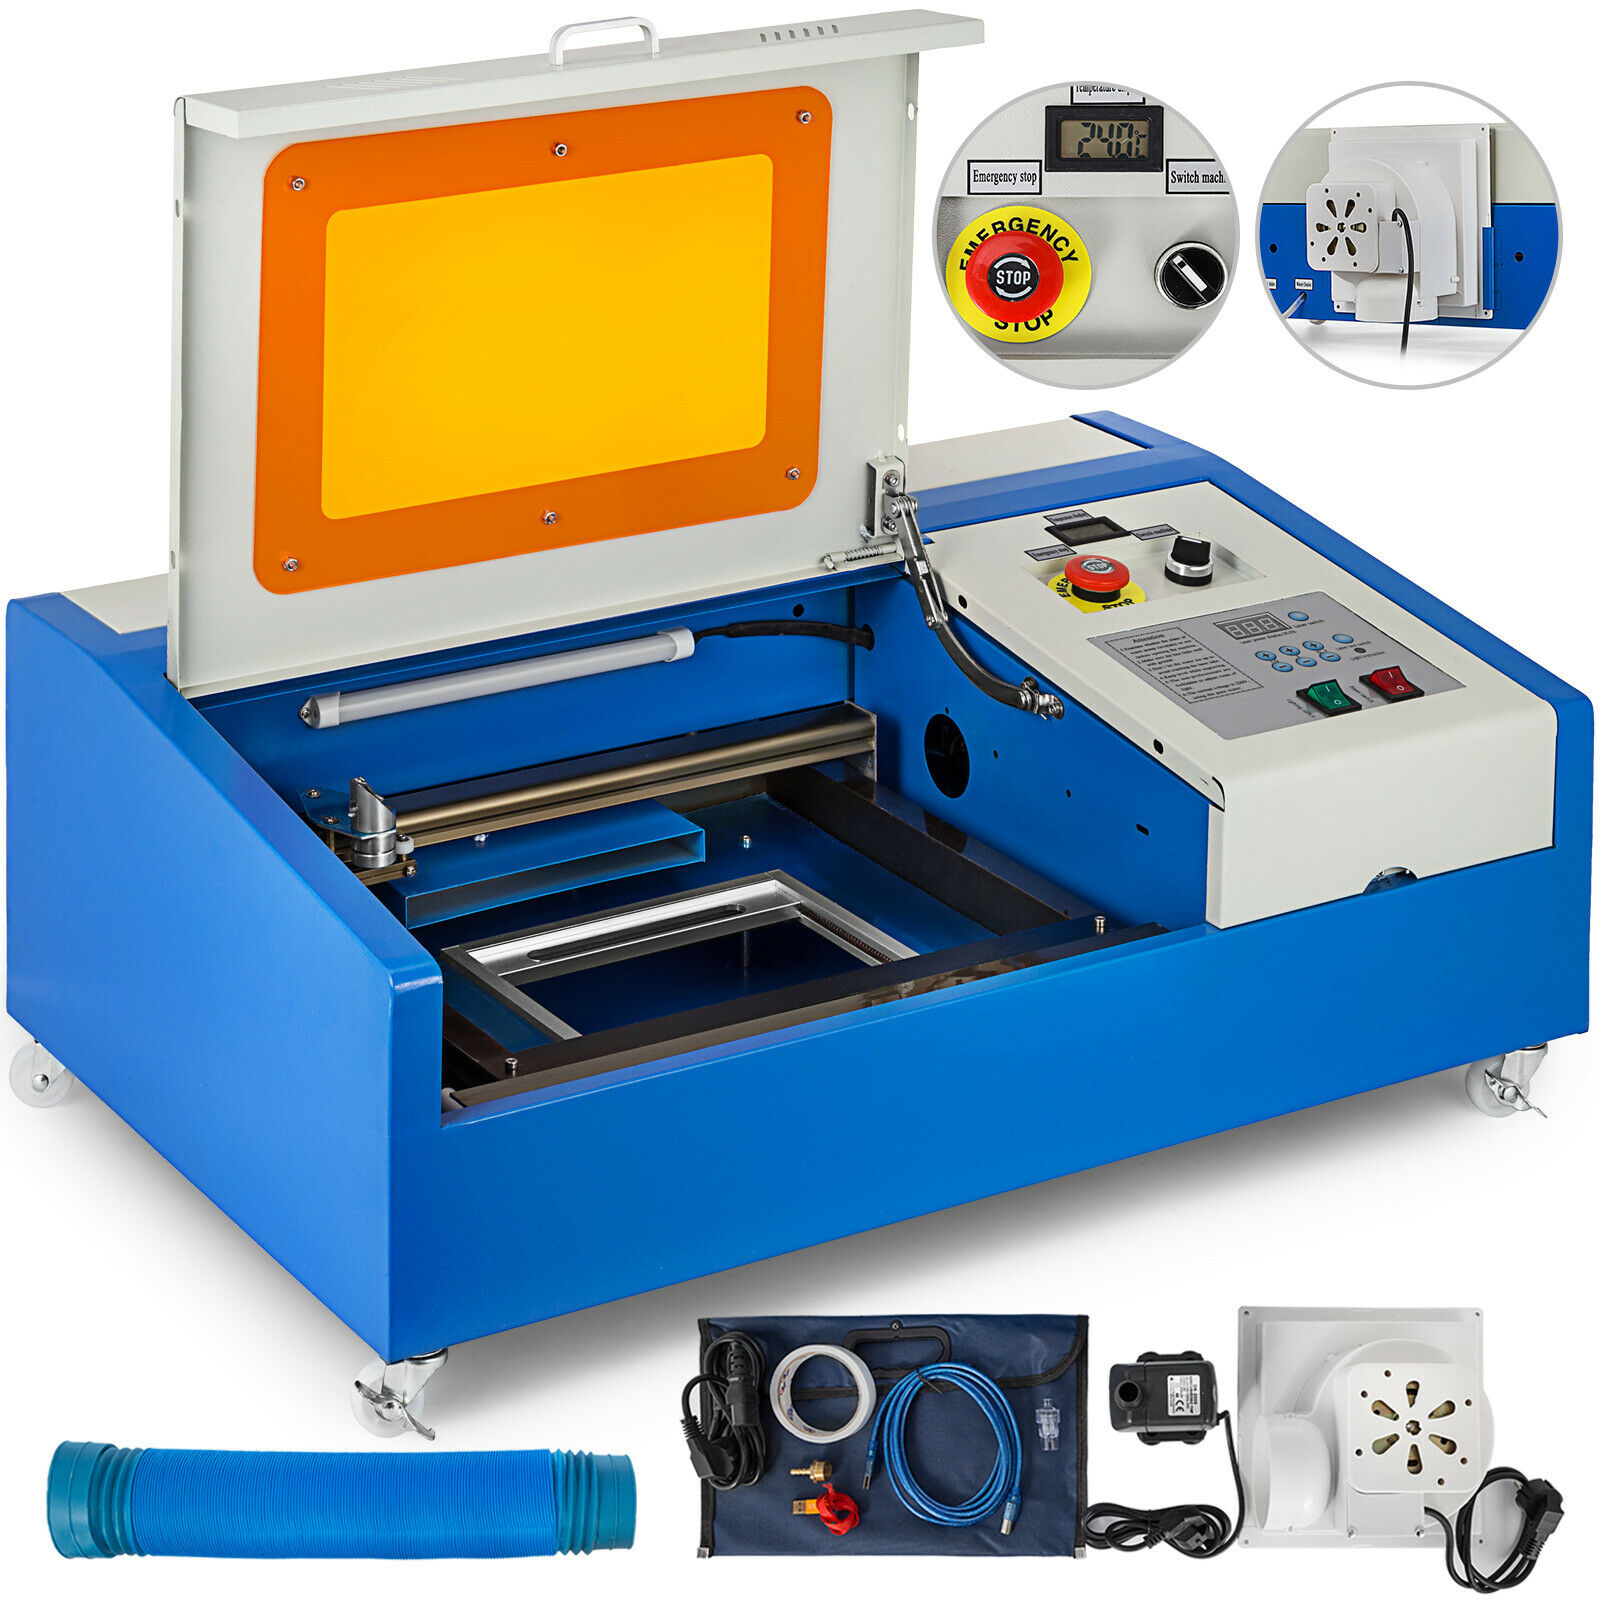 Free Shipping New USB CO2 CO2 Laser Engraving Cutting Machine Laser Engraver 220V/110V 40W